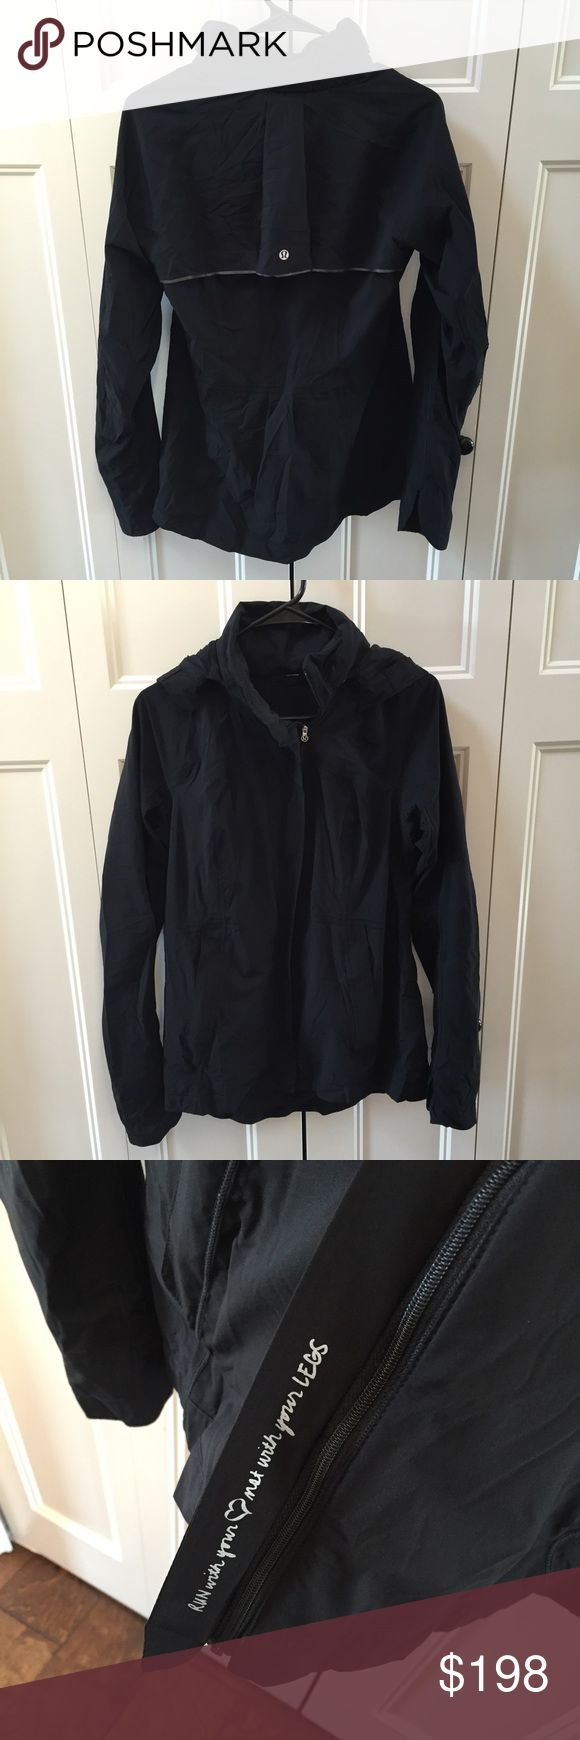 Lululemon Run in the Rain Jacket Lululemon Run in the Rain Jacket. Black. Very excellent used condition ! Size 8. No trades. If you like something, please use the offer button, I may not respond to offers in comments. I play by Posh's rules. Bundle for UP TO a 25% discount as well as saving on your shipping! Play nice and happy shopping! lululemon athletica Jackets & Coats